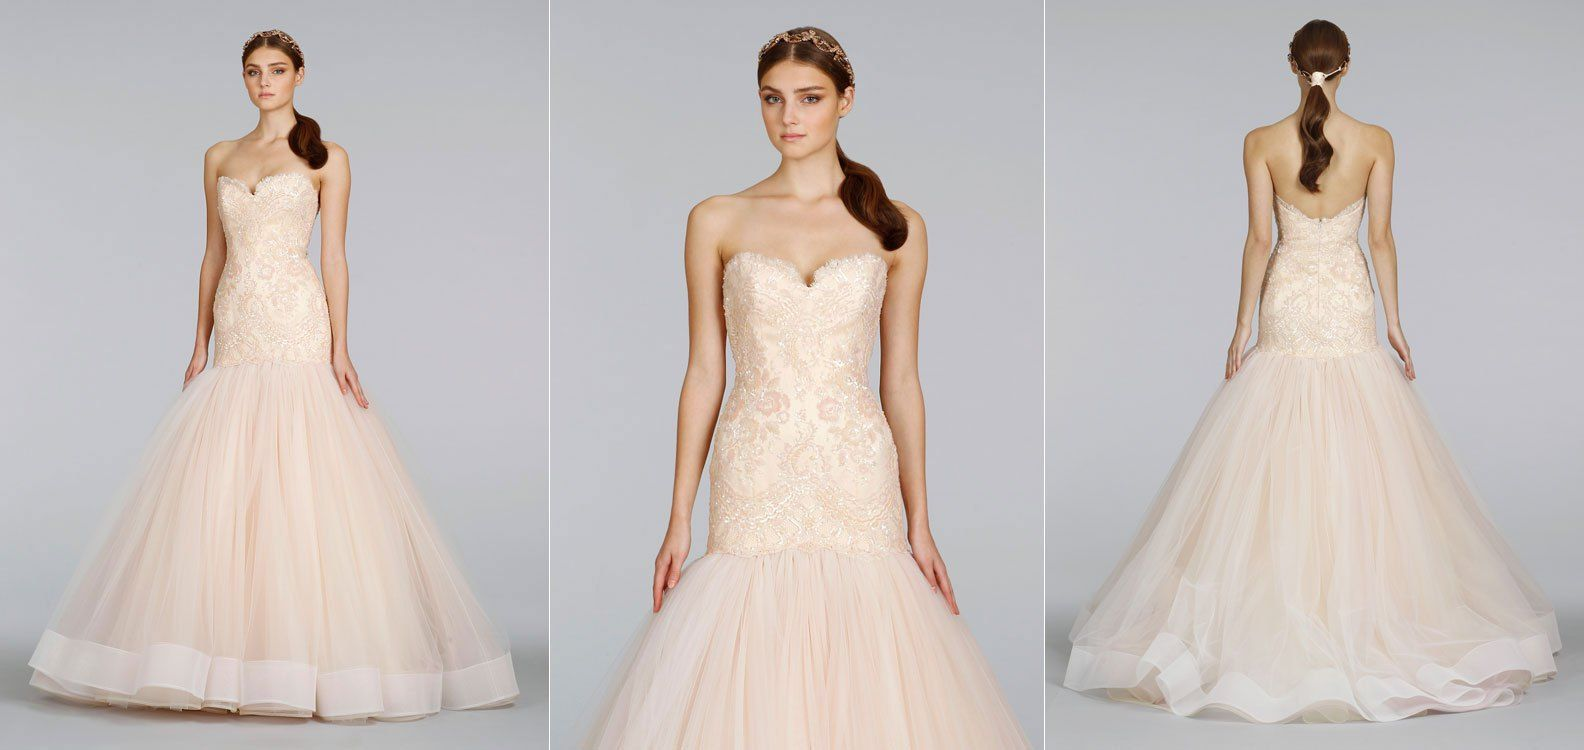 Shruthi In A Dreamy One Shoulder Pronovias Dress: Lazaro Blush Beaded Chantilly Lace Fit And Flare